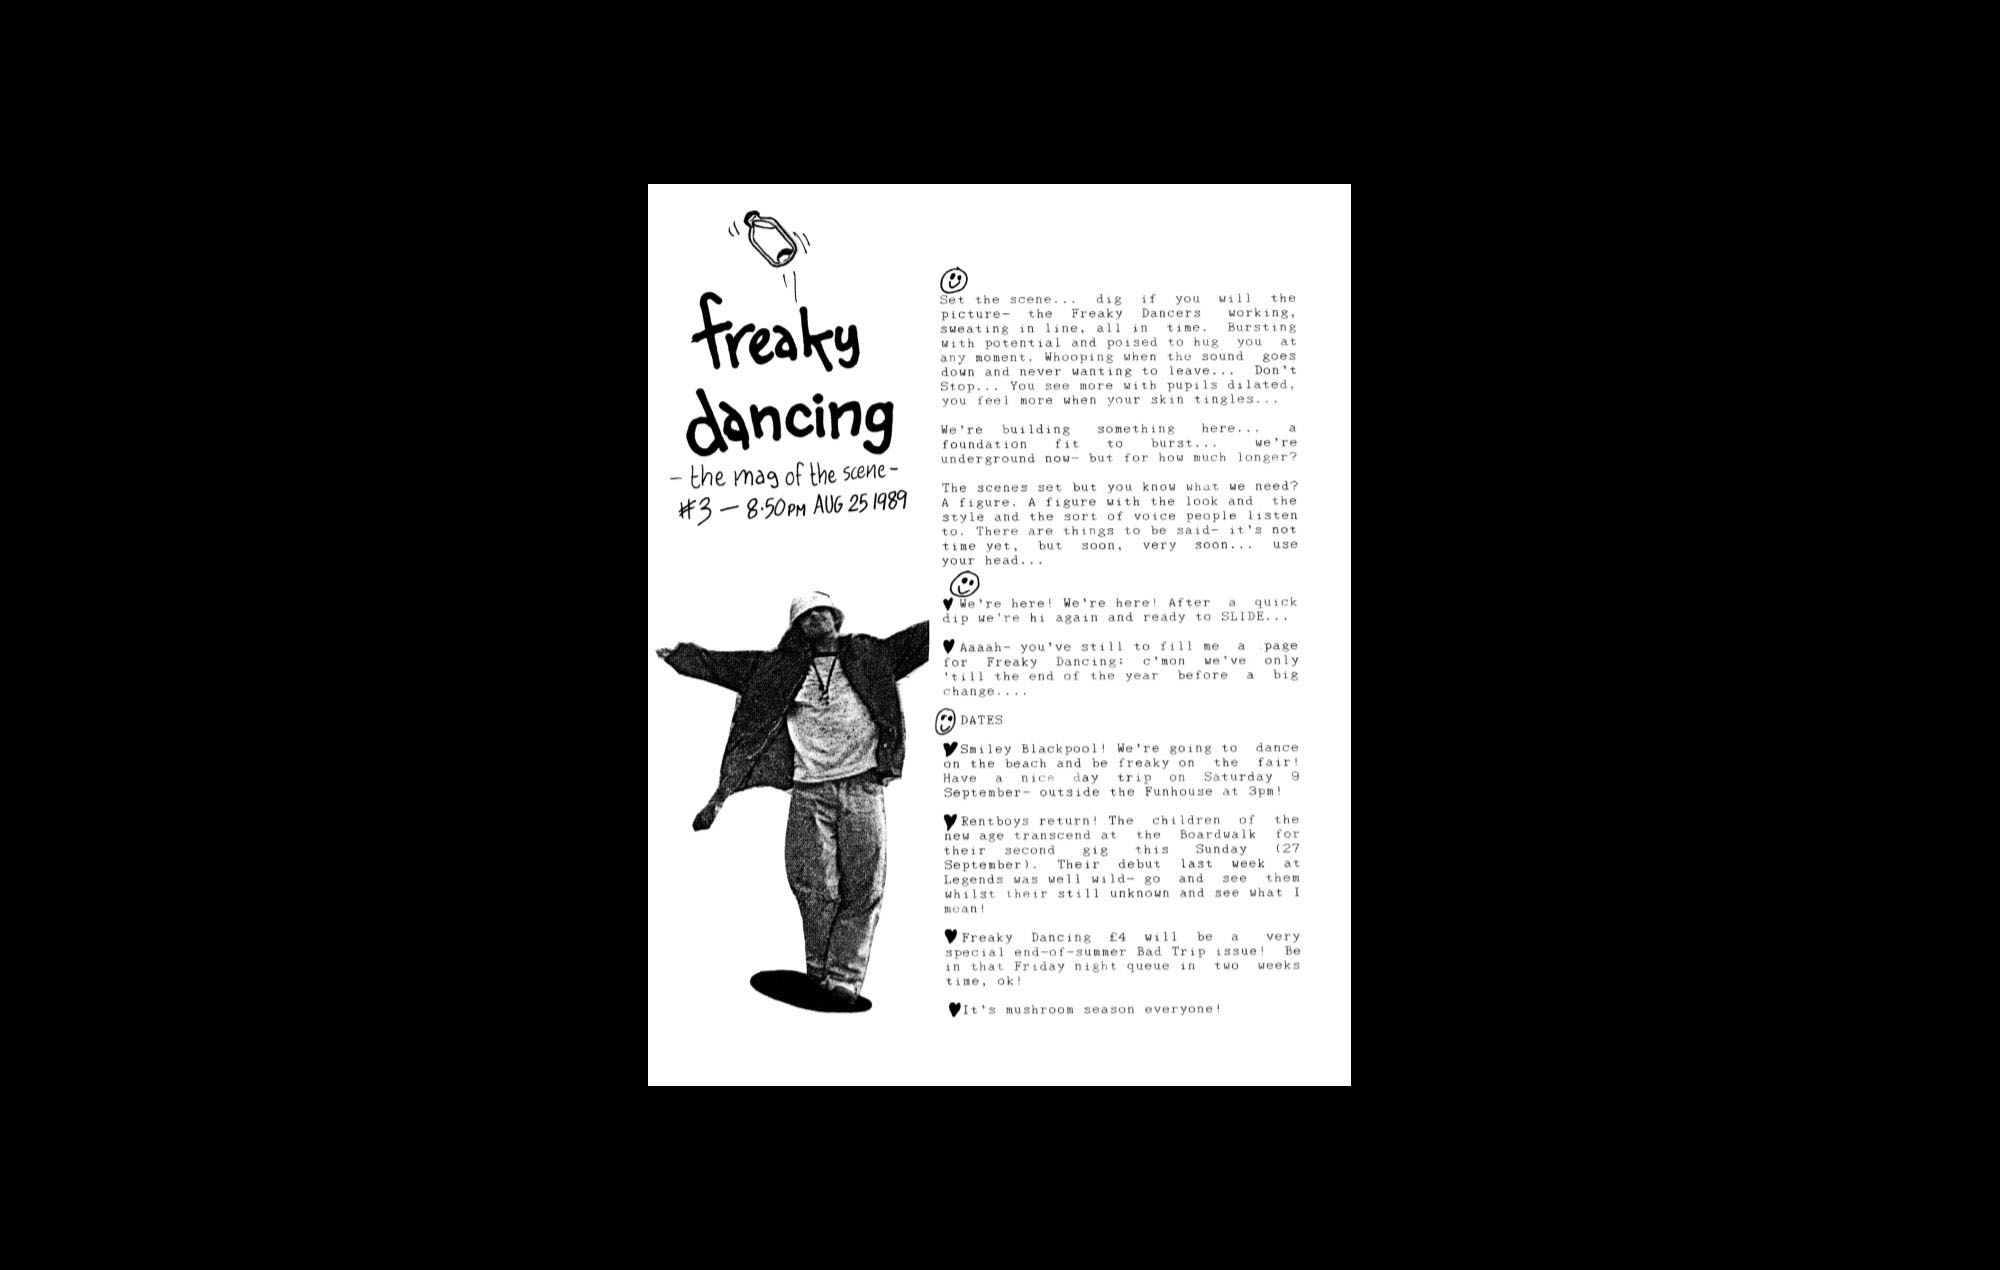 Behind the scenes of the Manchester Hacienda fanzine, Freaky